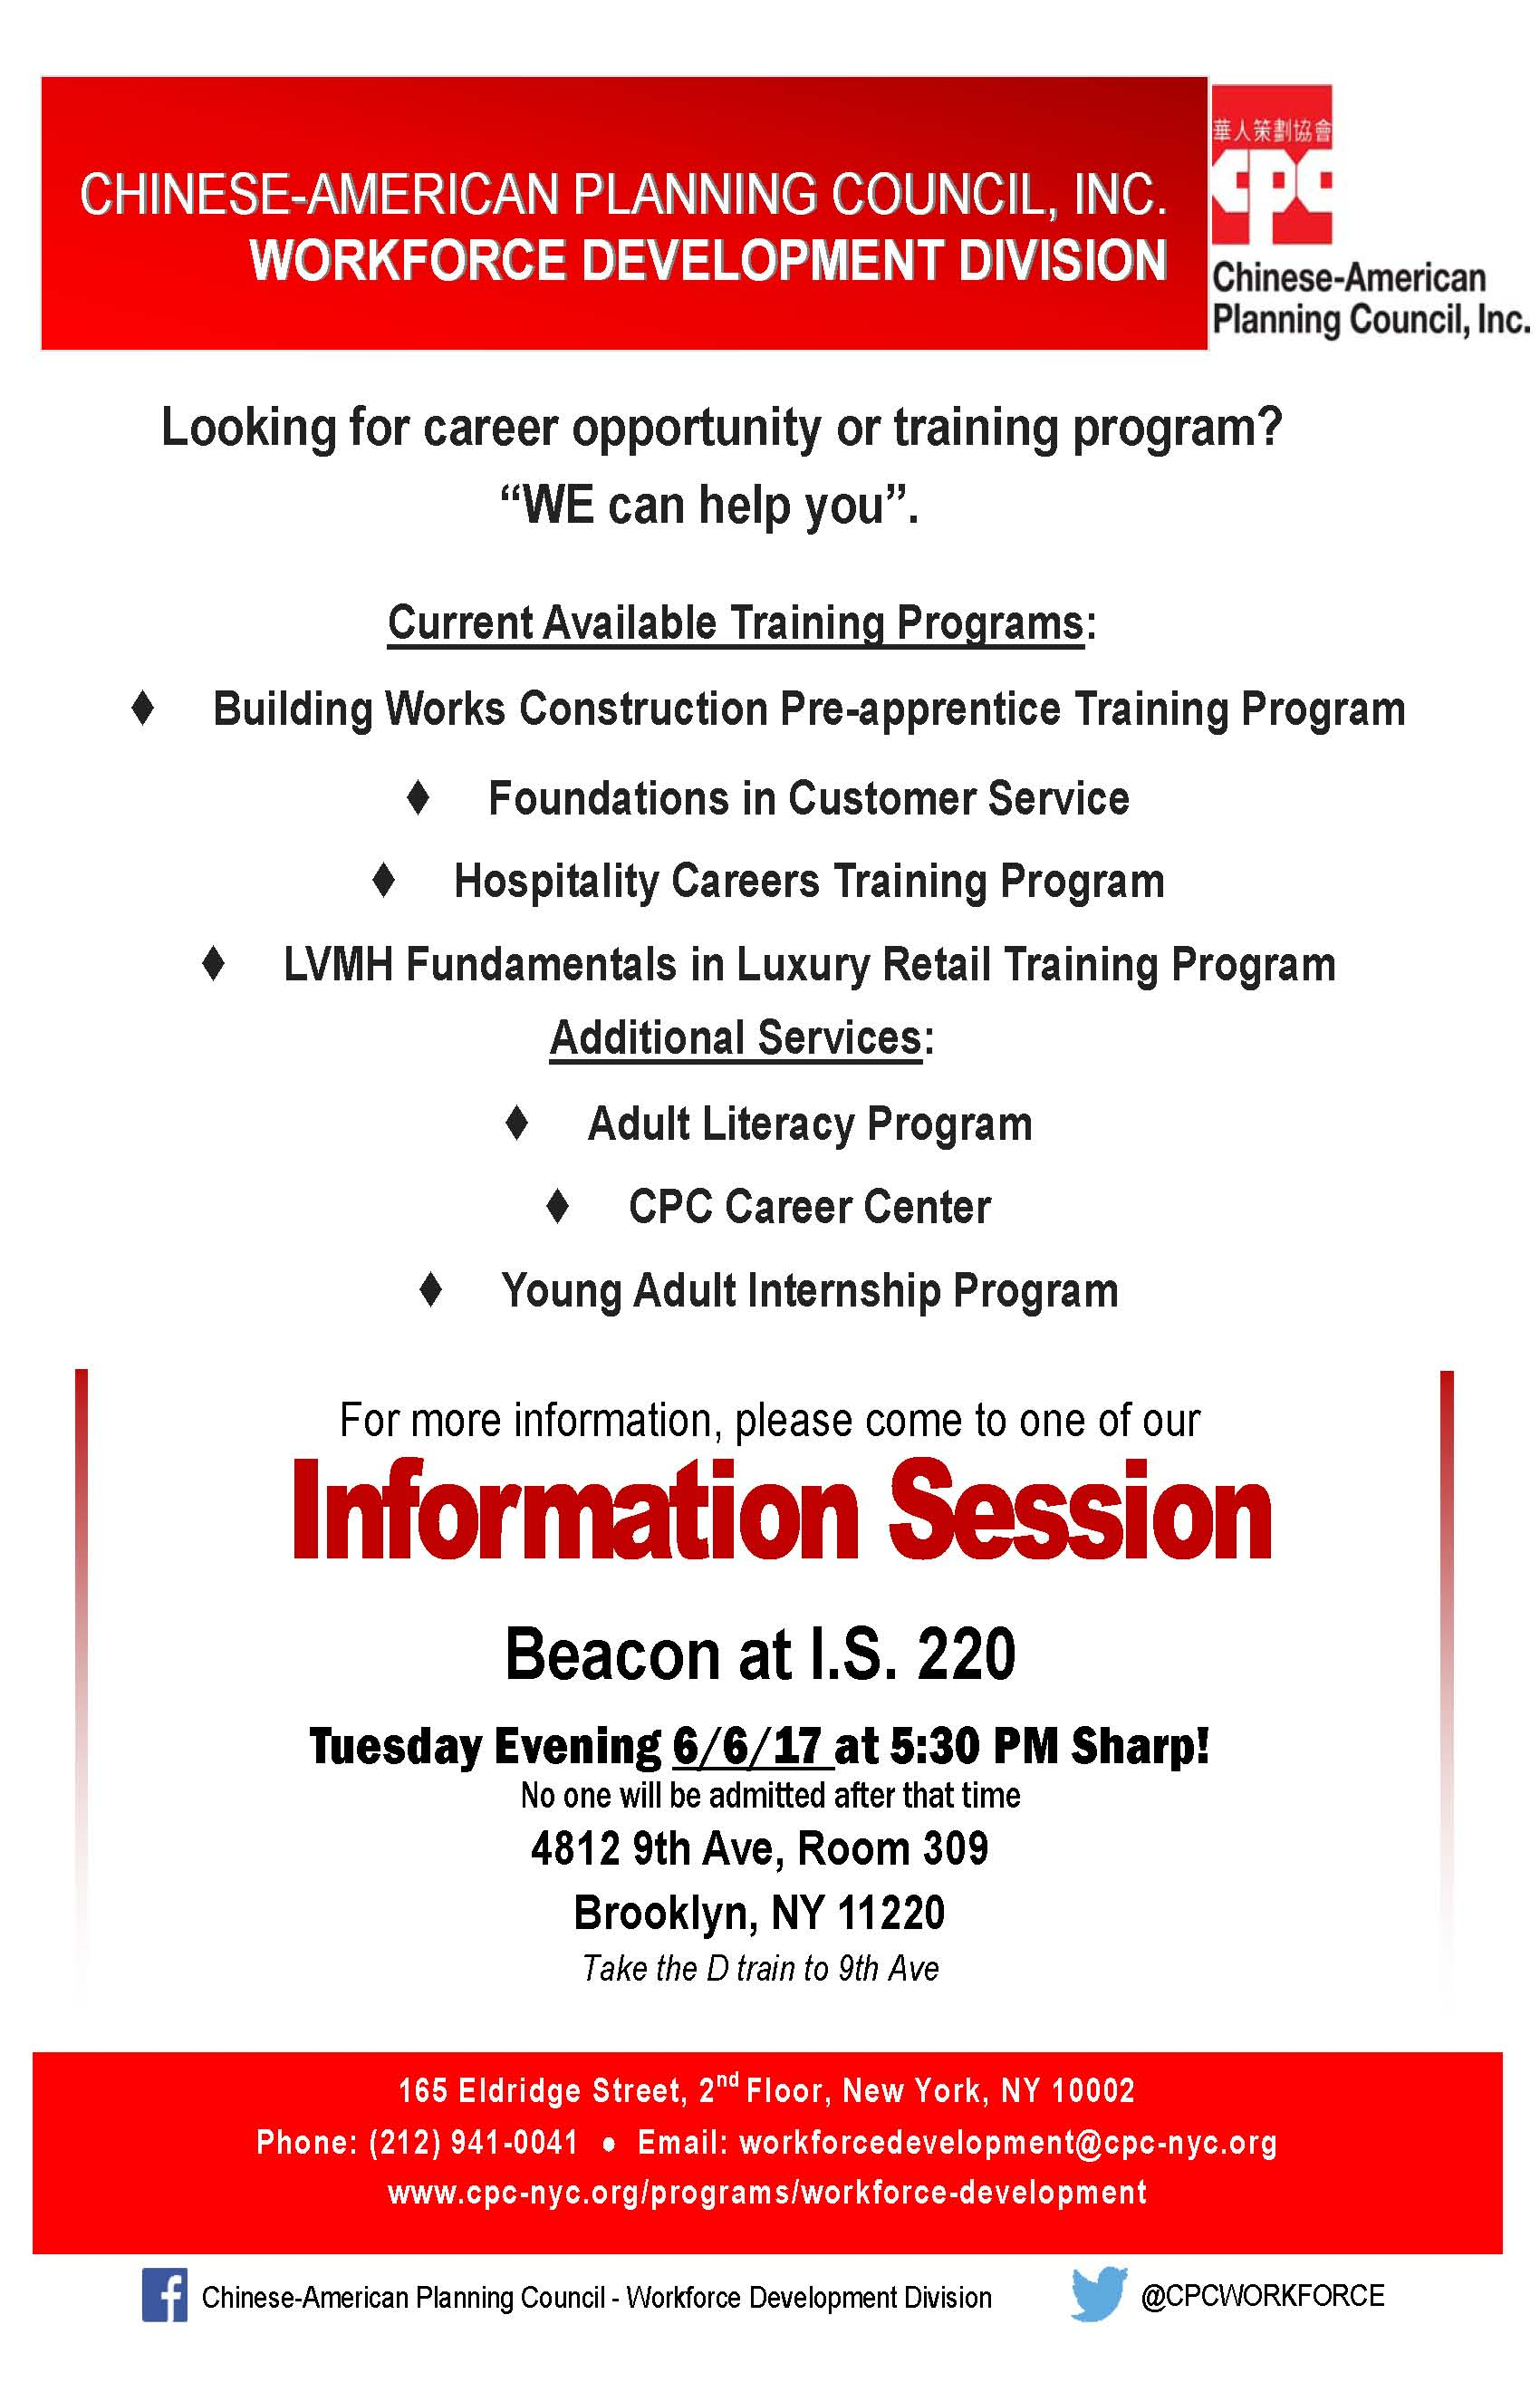 Evening Information Session Event with Beacon Program Lead